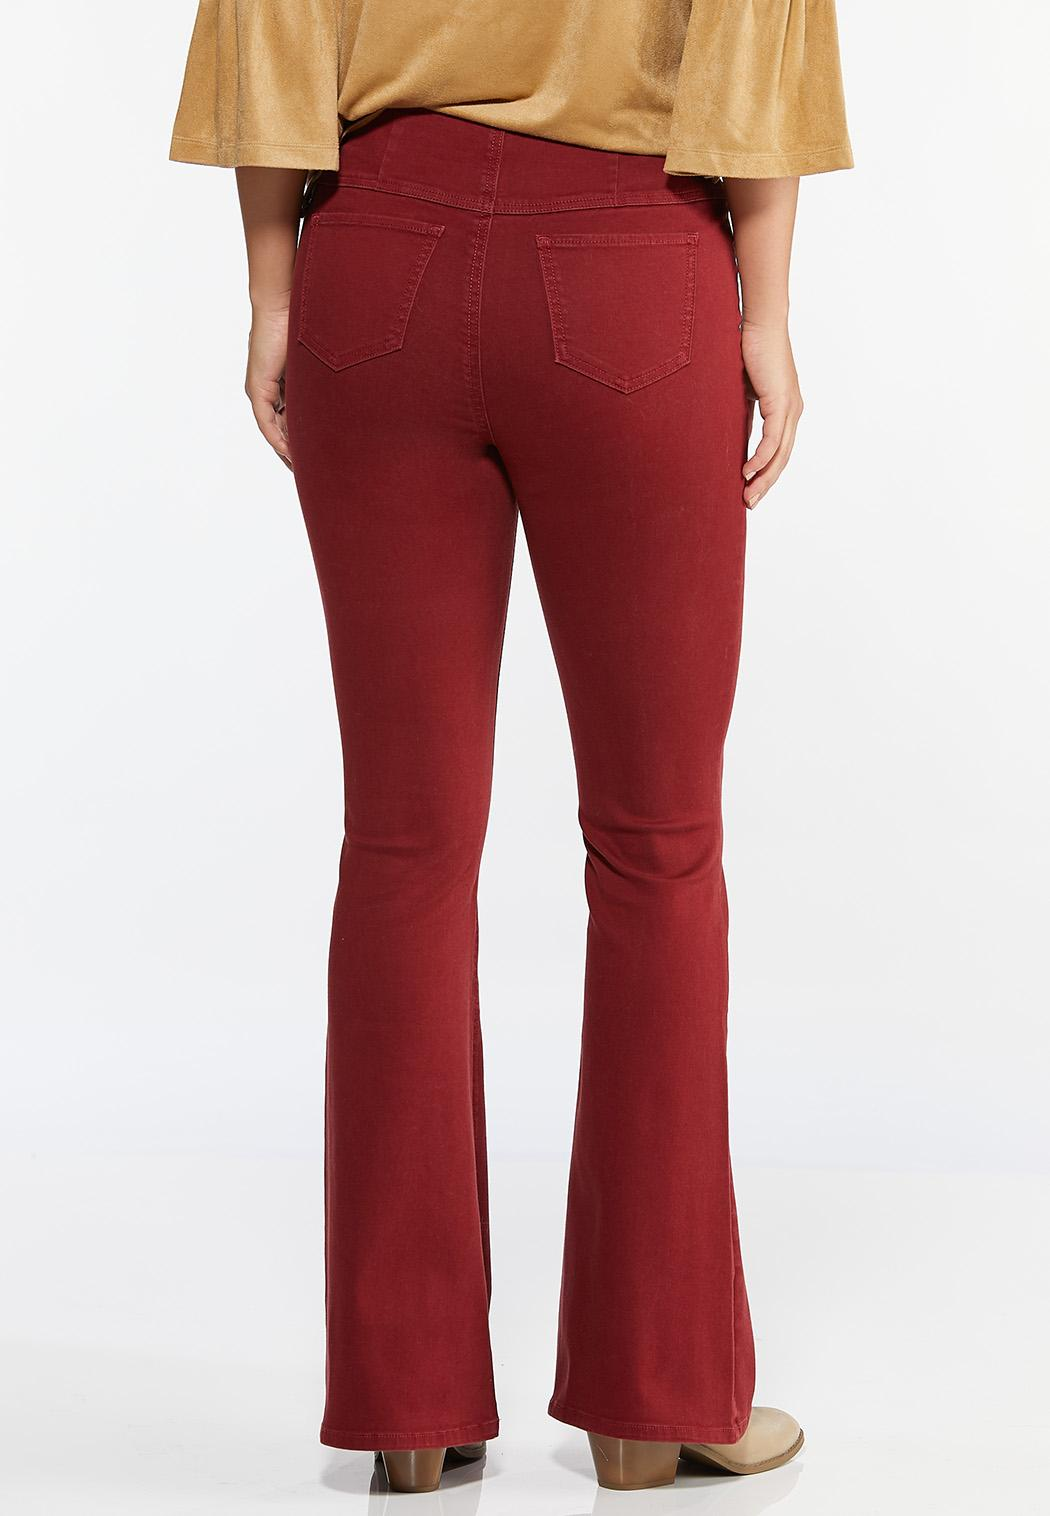 Red Flare Jeans (Item #44422814)